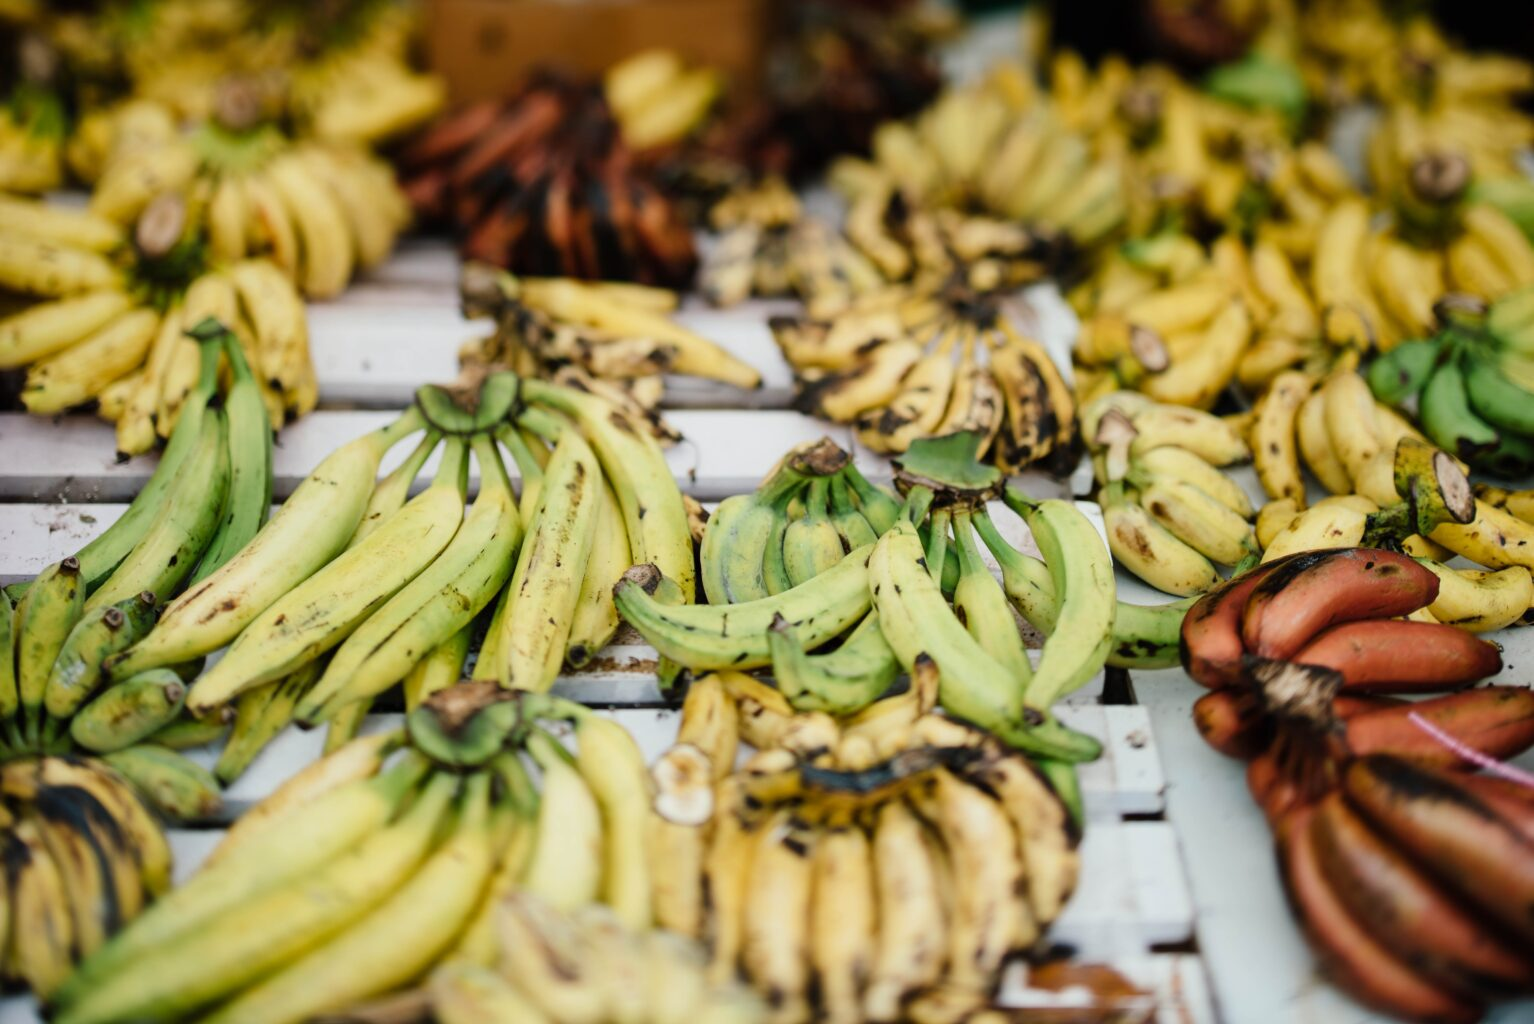 Piles of plantains for sale in an outdoor market in Cote d'Ivoir